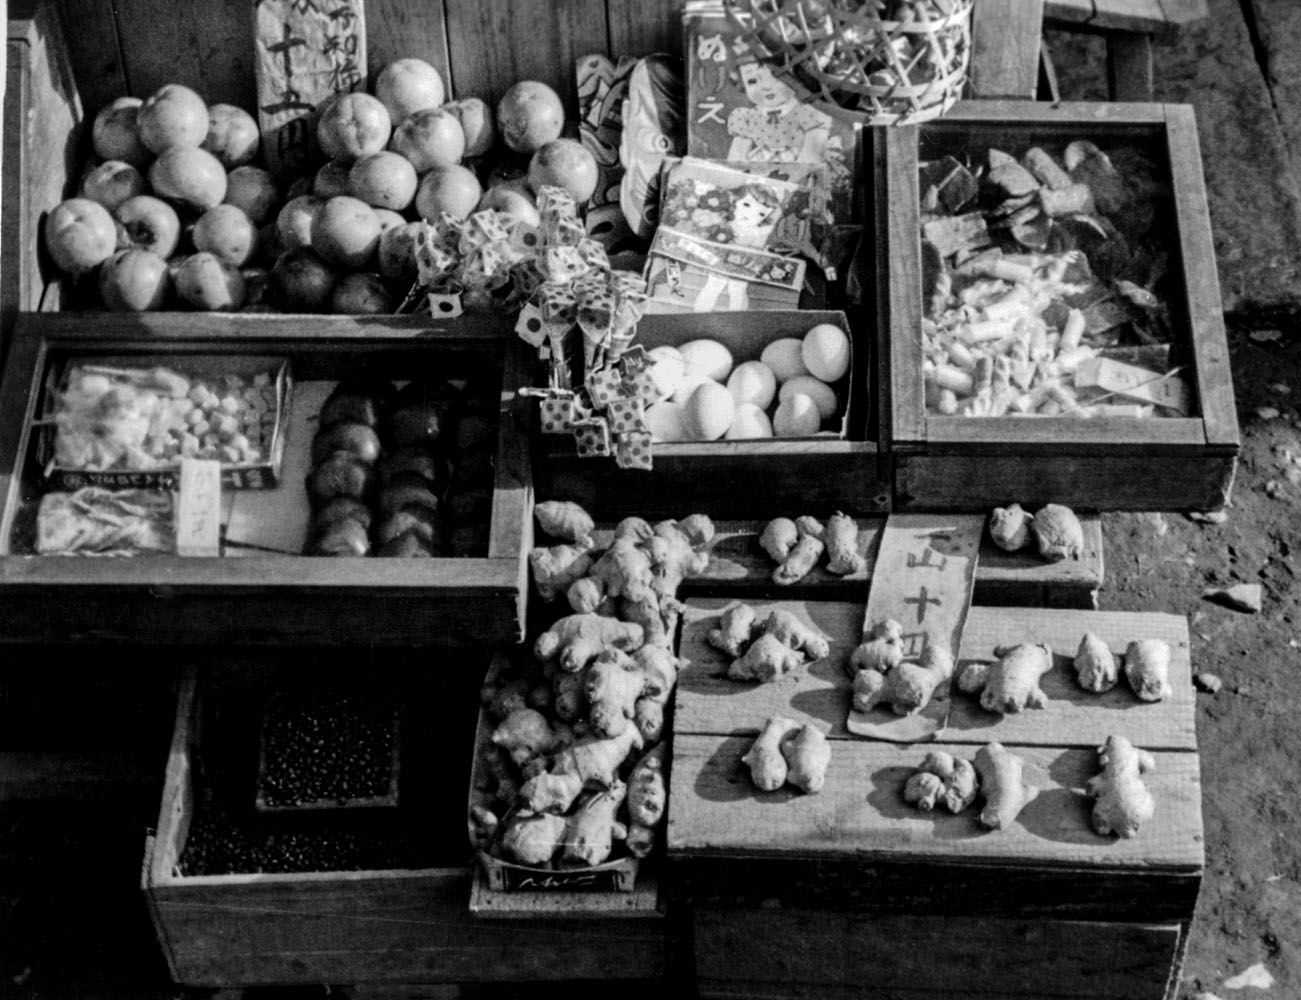 444-Display of Fruit, Ginger and Eggs